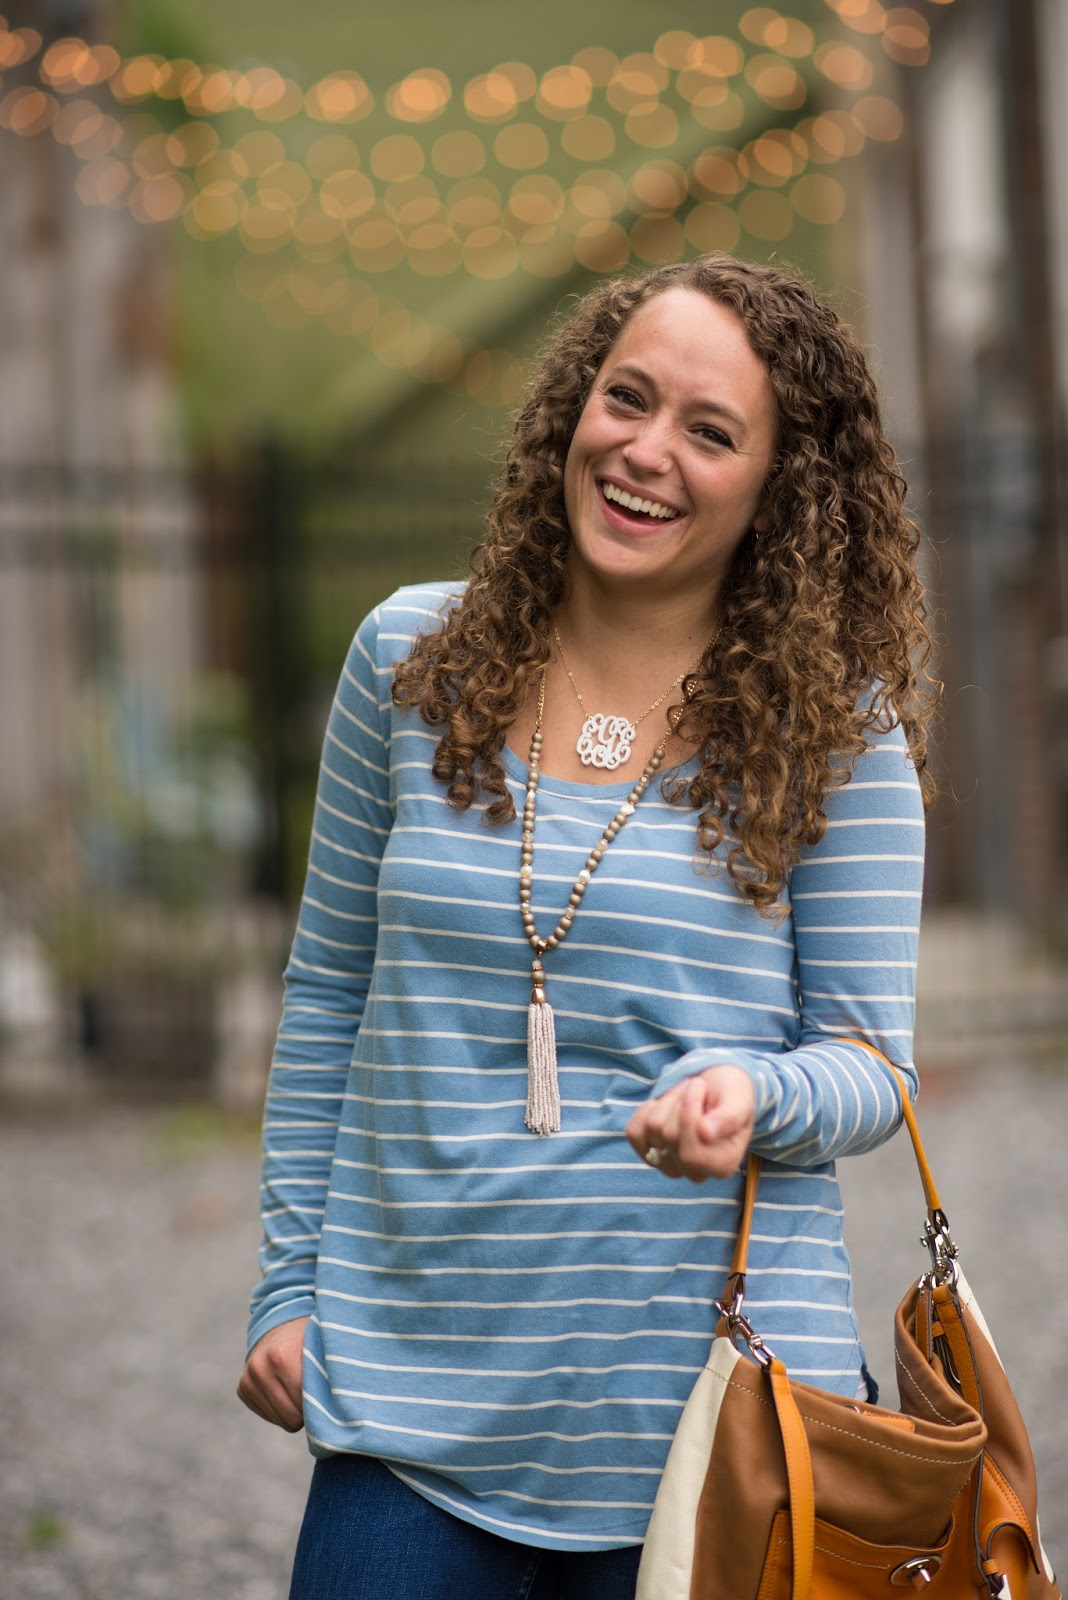 Blue and White Striped Shirt and Jeans with a Tassel Necklace